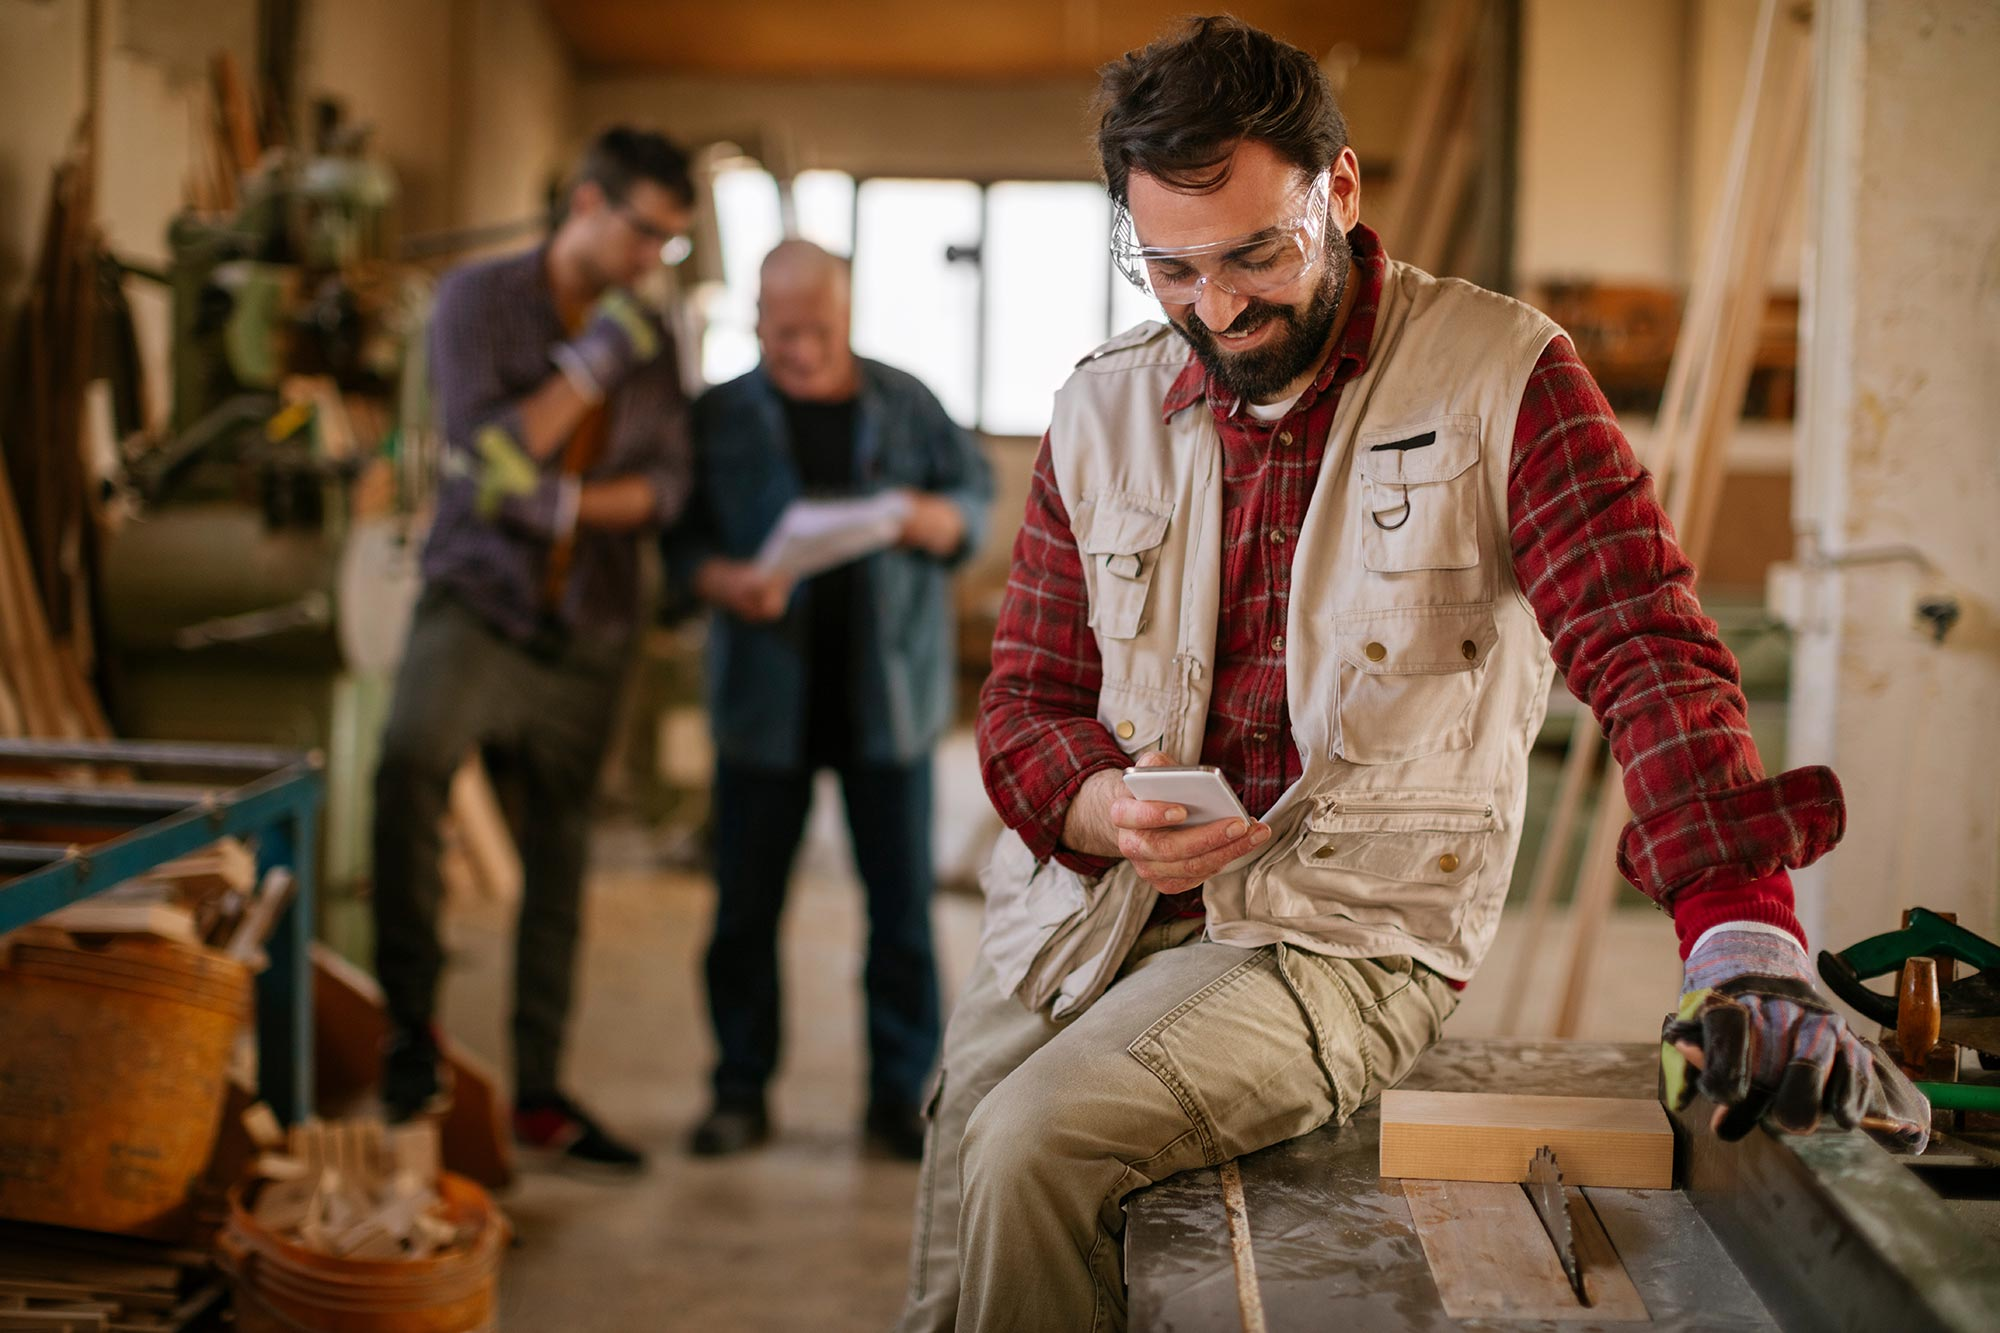 carpenter-man-with-mobile-phone-in-workshop